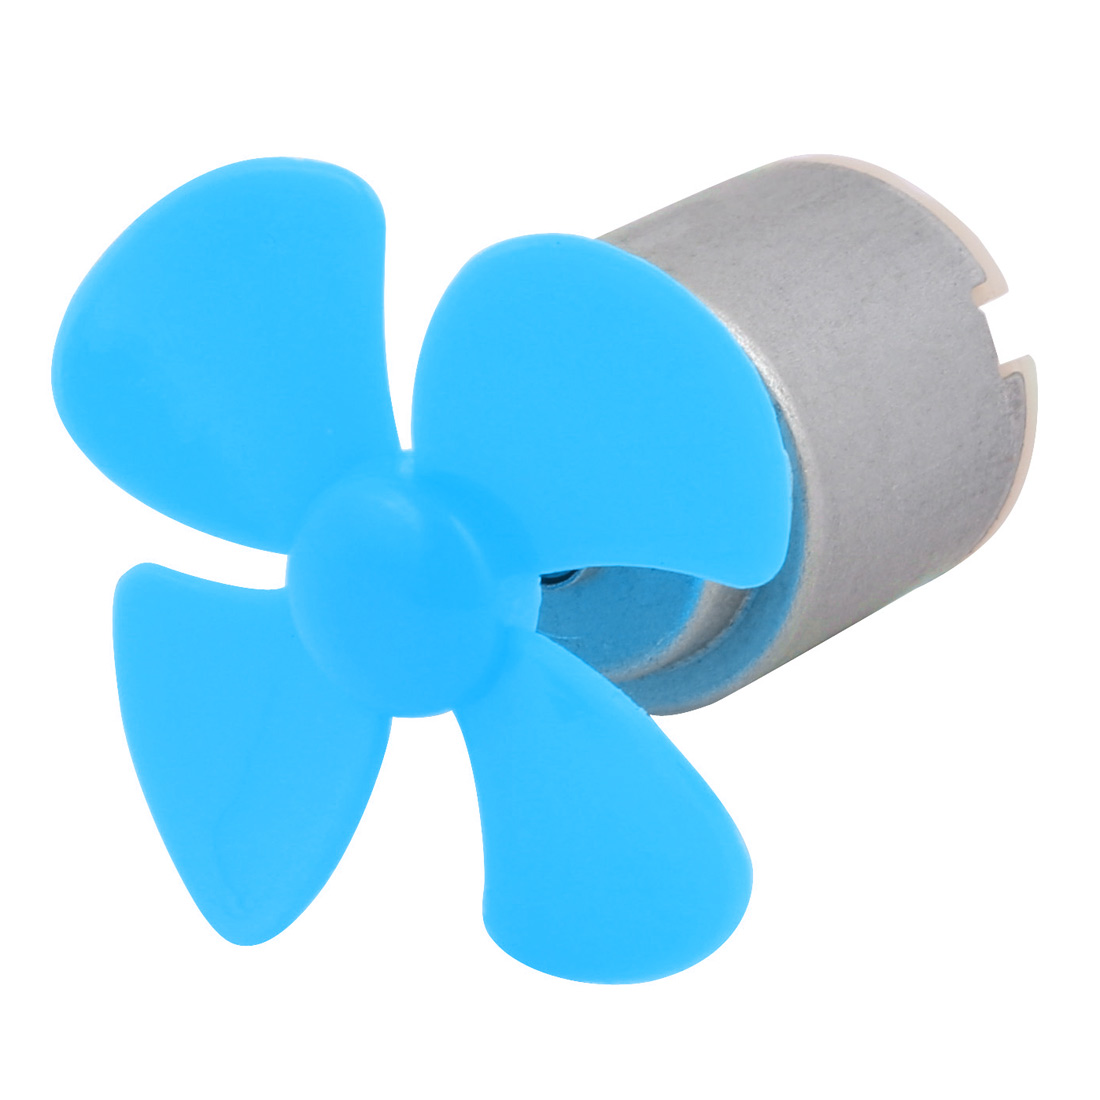 DC 3V 0.13A 13000RPM Large Torque Motor 4-Vane 40mm Dia Propeller Blue for RC Model